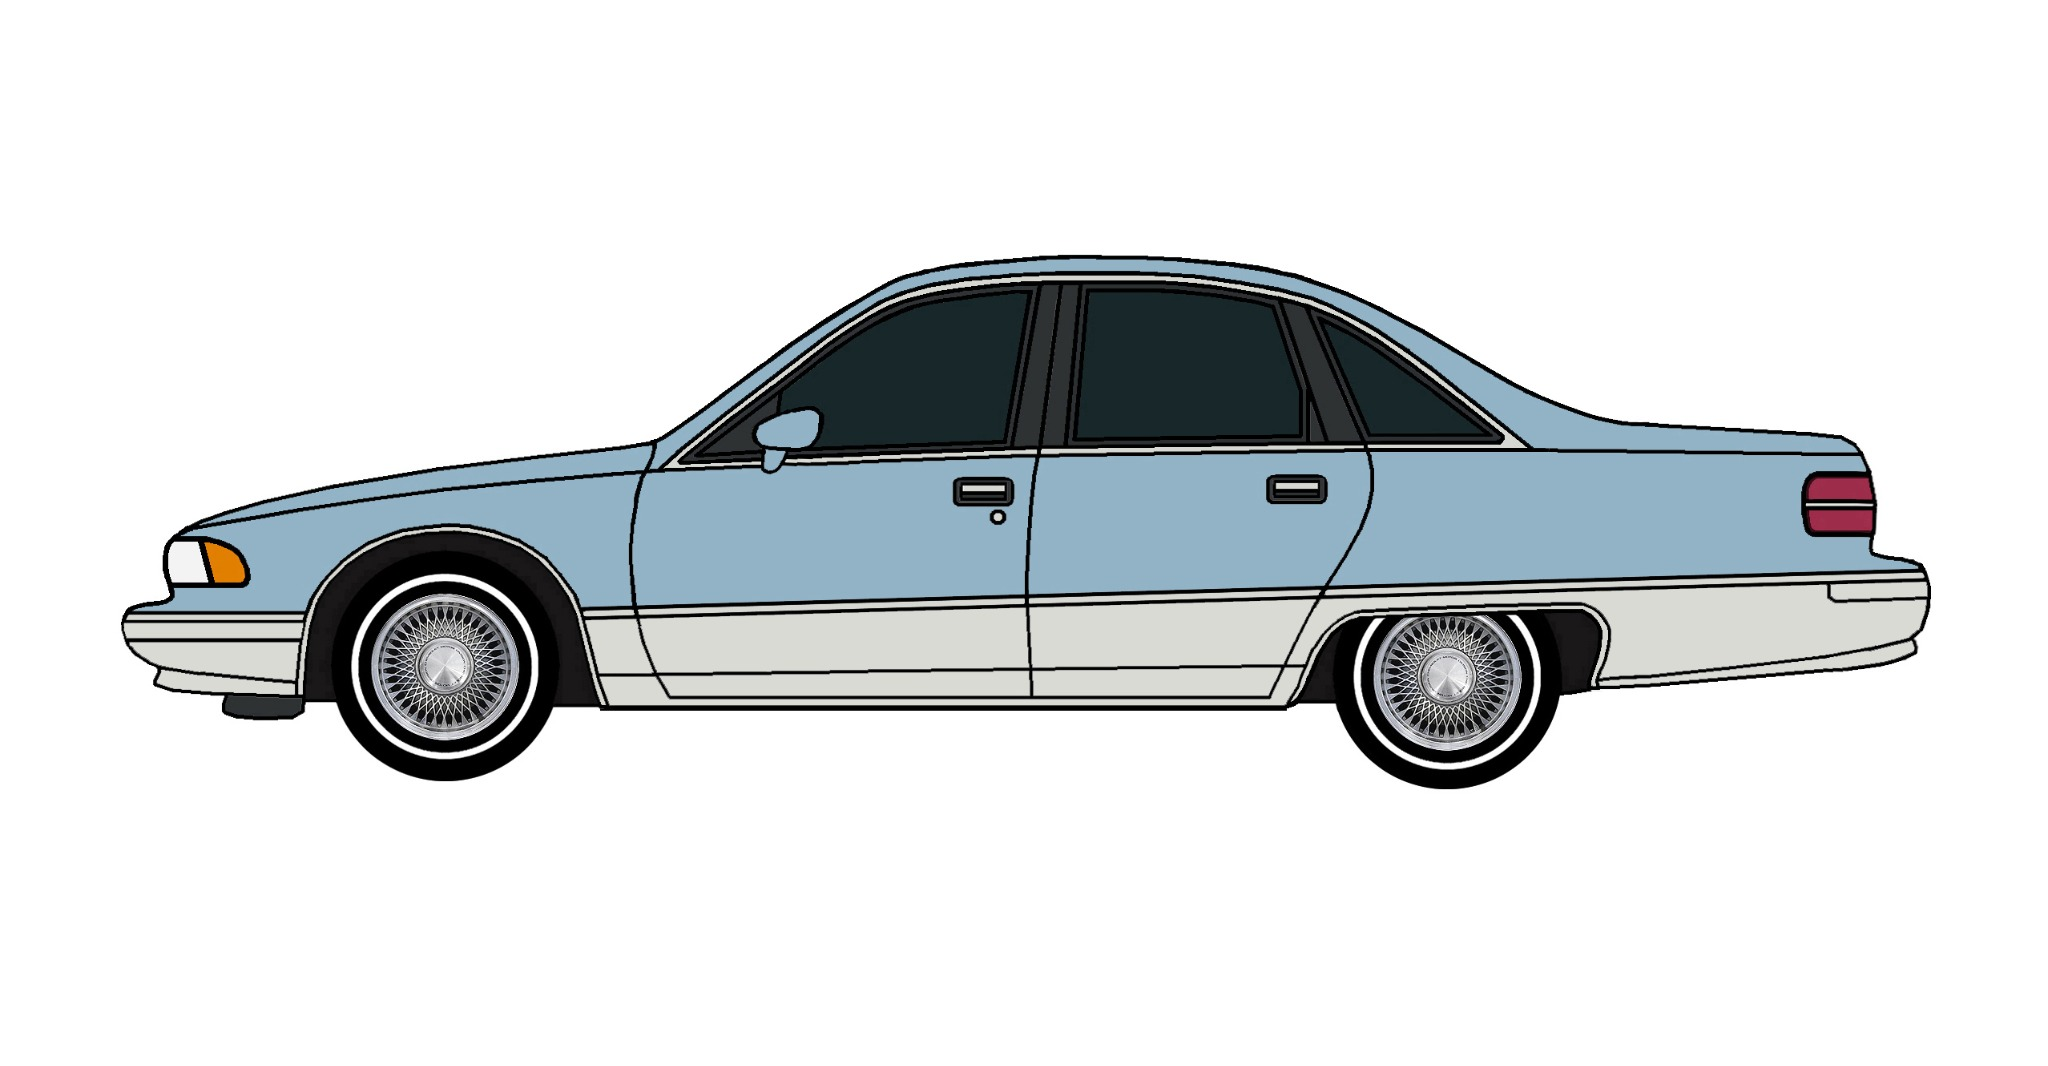 1991 Chevy Caprice LIGHT BLUE & GREY